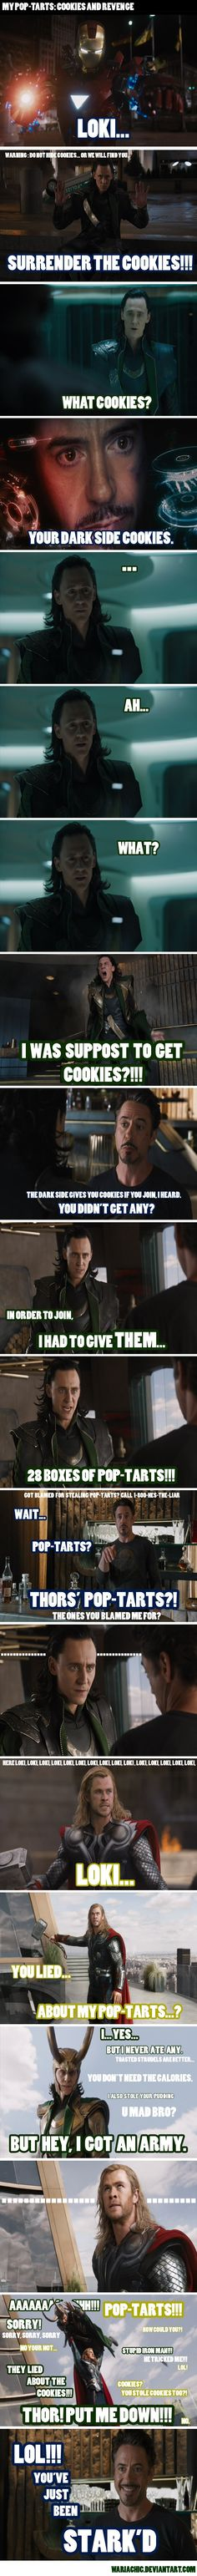 Stark'd hahaha. literally dying of laughter right now!!!!!!!!!!!